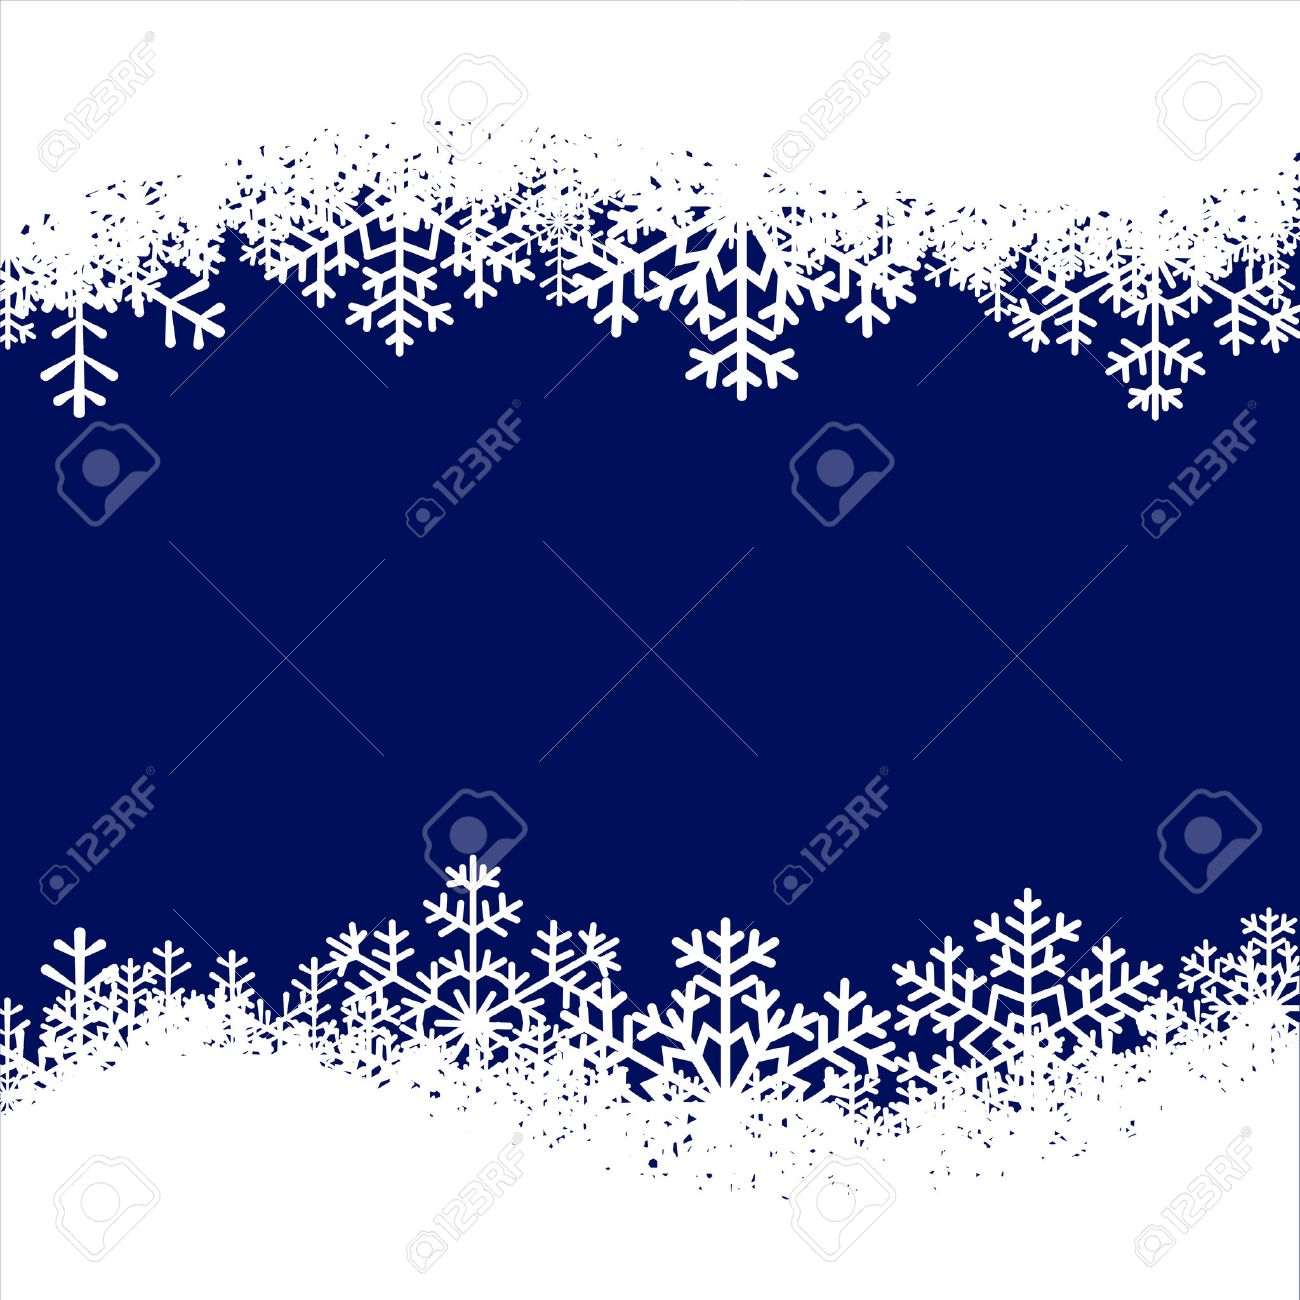 V card background images - Christmas Card With Snowflakes Border On Blue Background Stock Vector 33879983